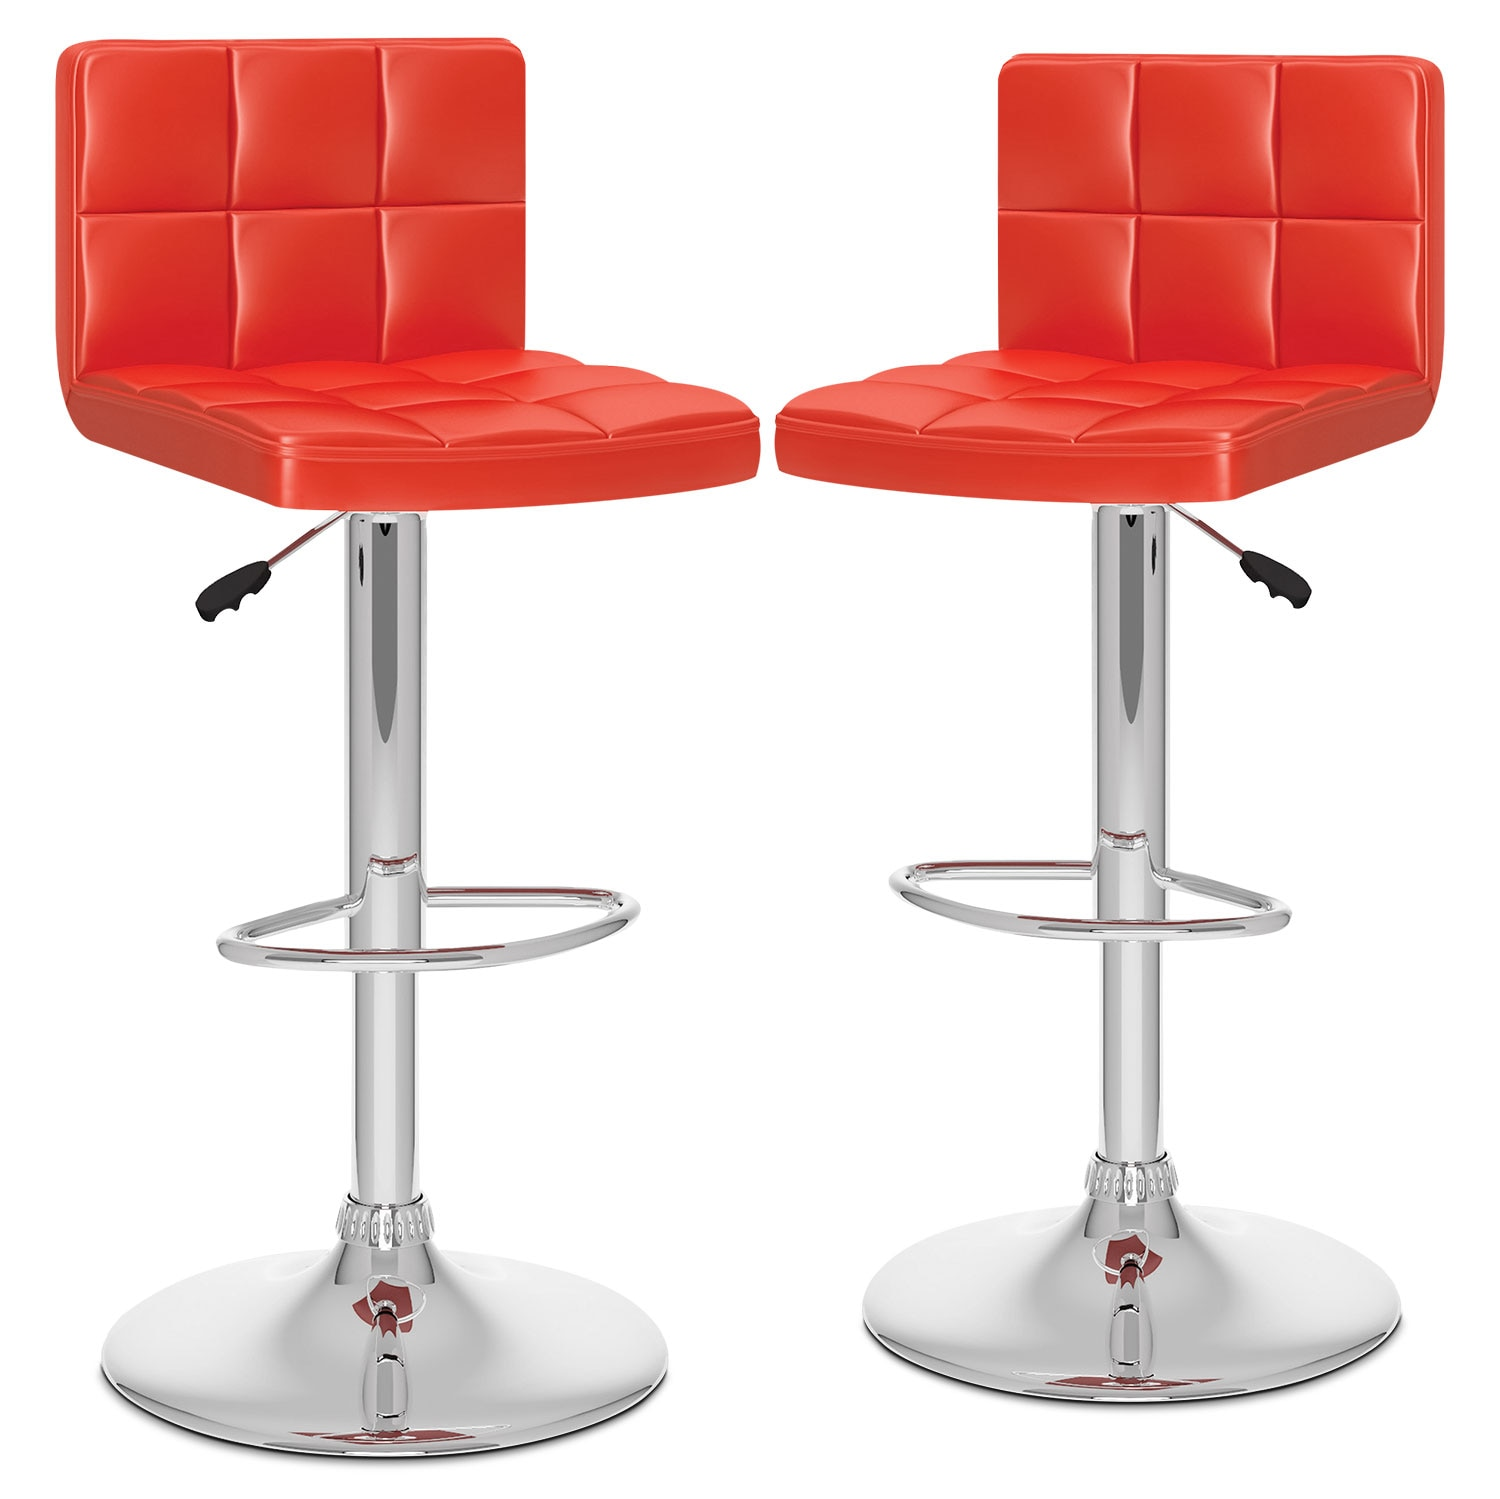 CorLiving High-Back Adjustable Bar Stool, Set of 2 – Red